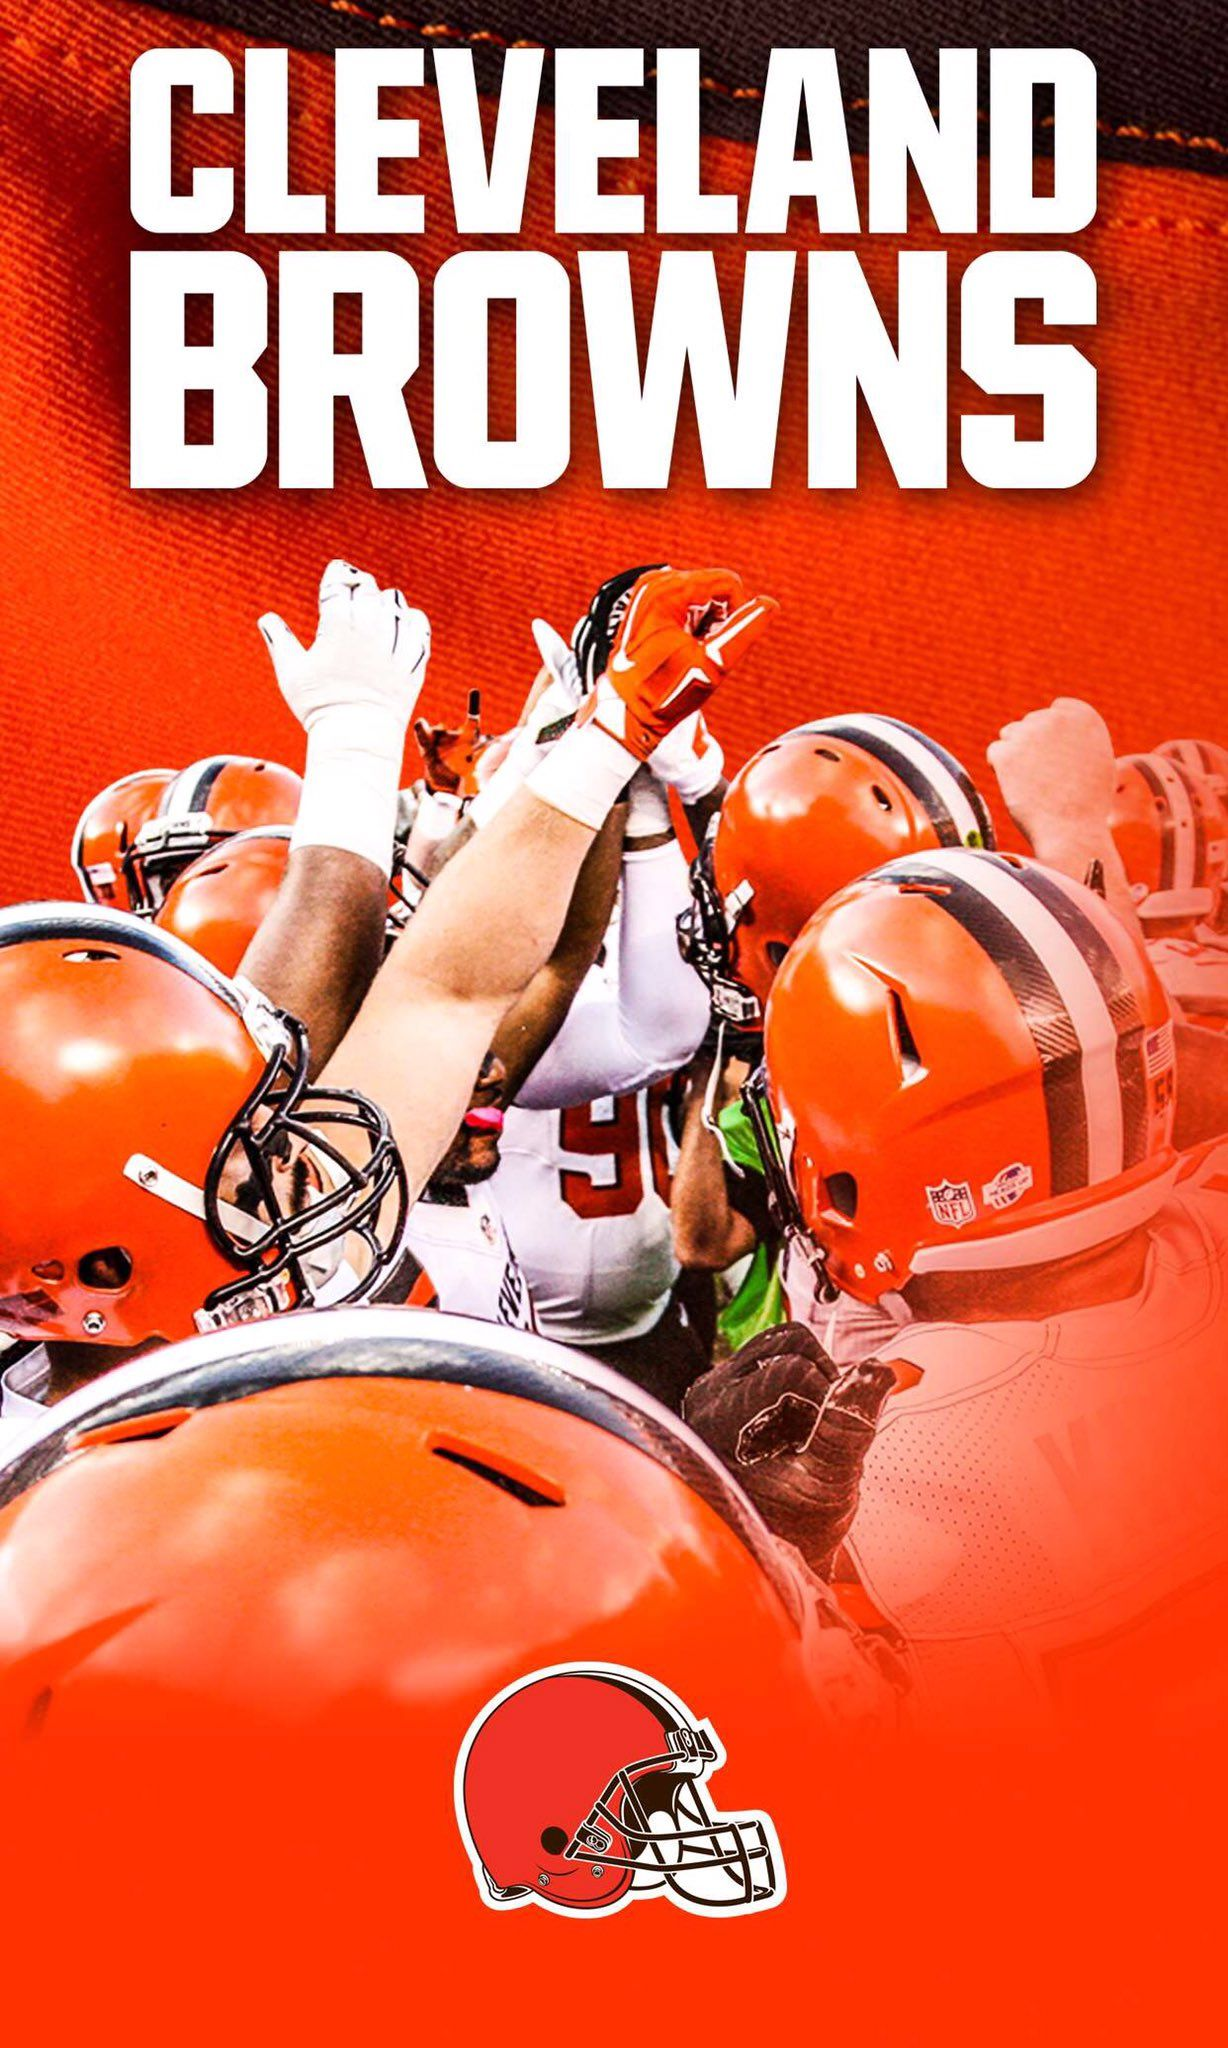 Twitter Cleveland browns history, Cleveland browns